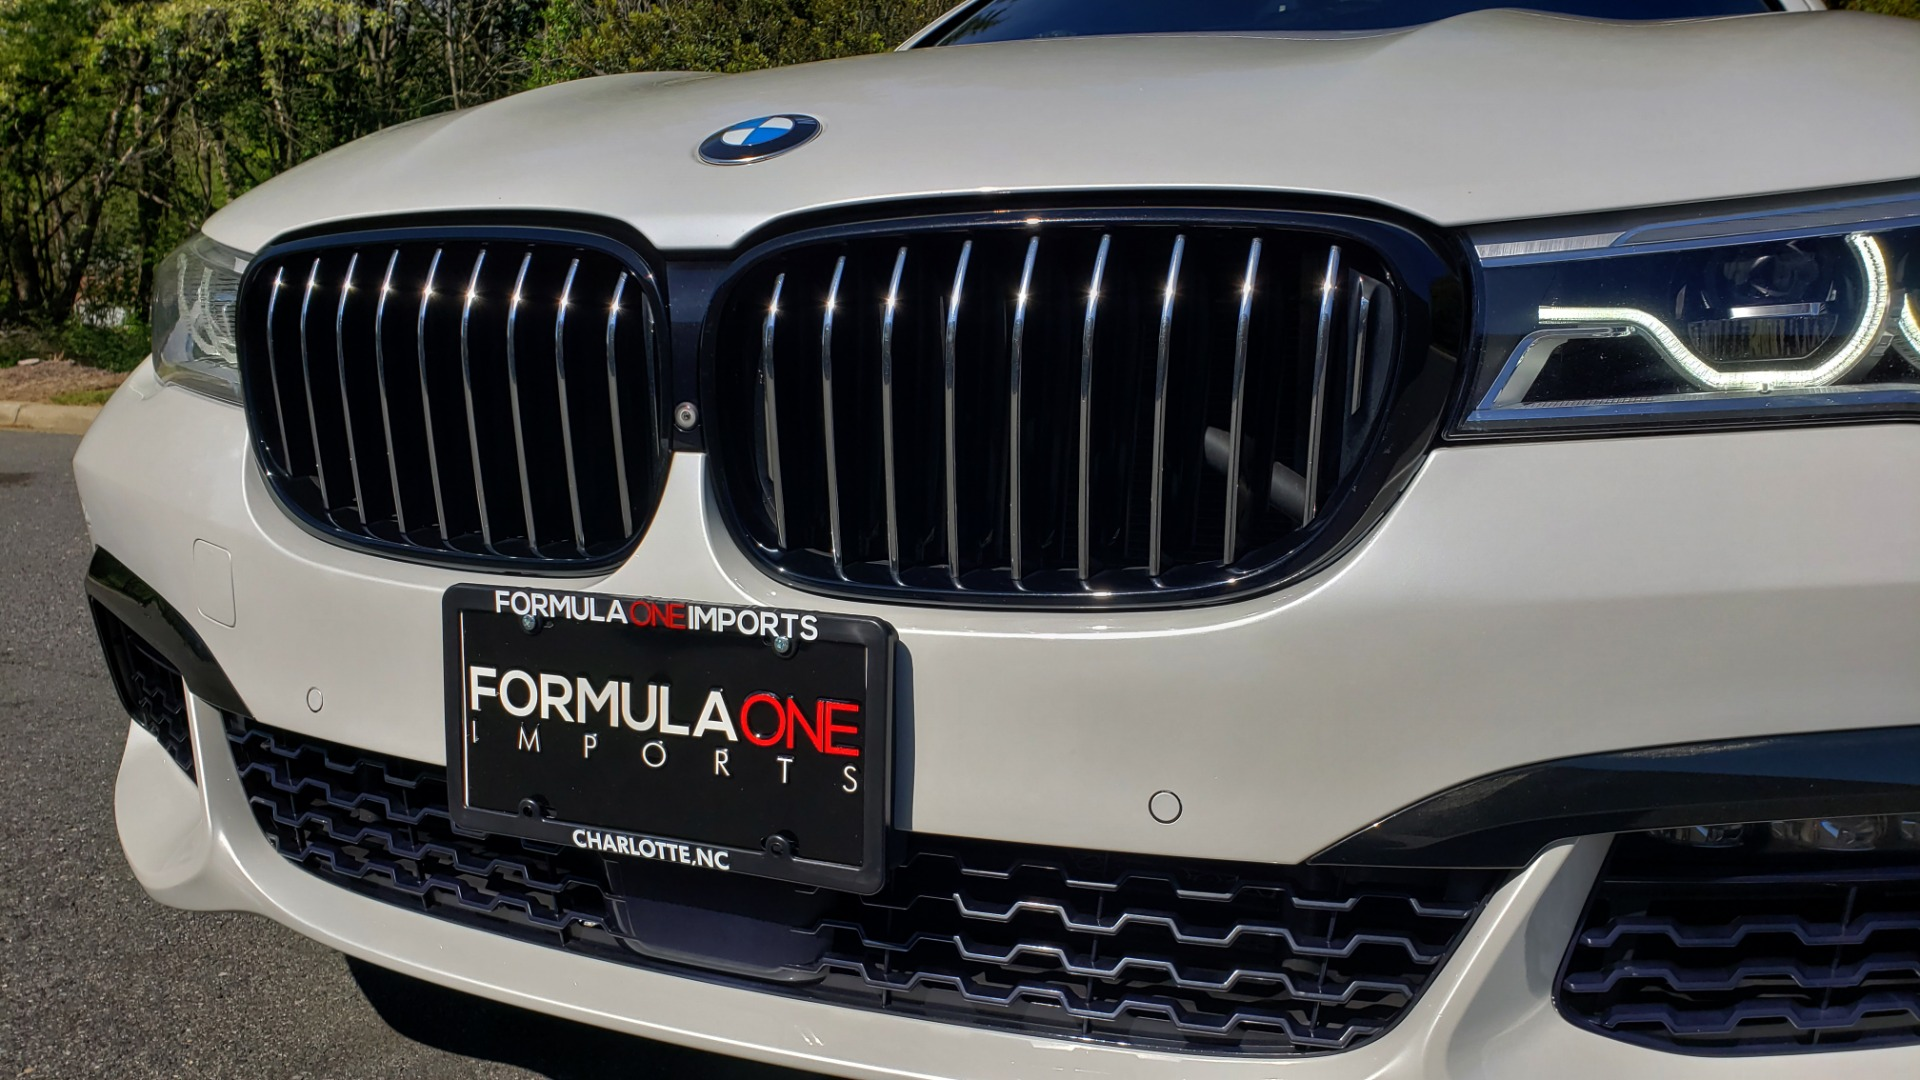 Used 2017 BMW 7 SERIES 750I XDRIVE / M-SPORT / EXEC PKG / DRVR ASST PLUS II / CLD WTHR for sale $48,495 at Formula Imports in Charlotte NC 28227 18